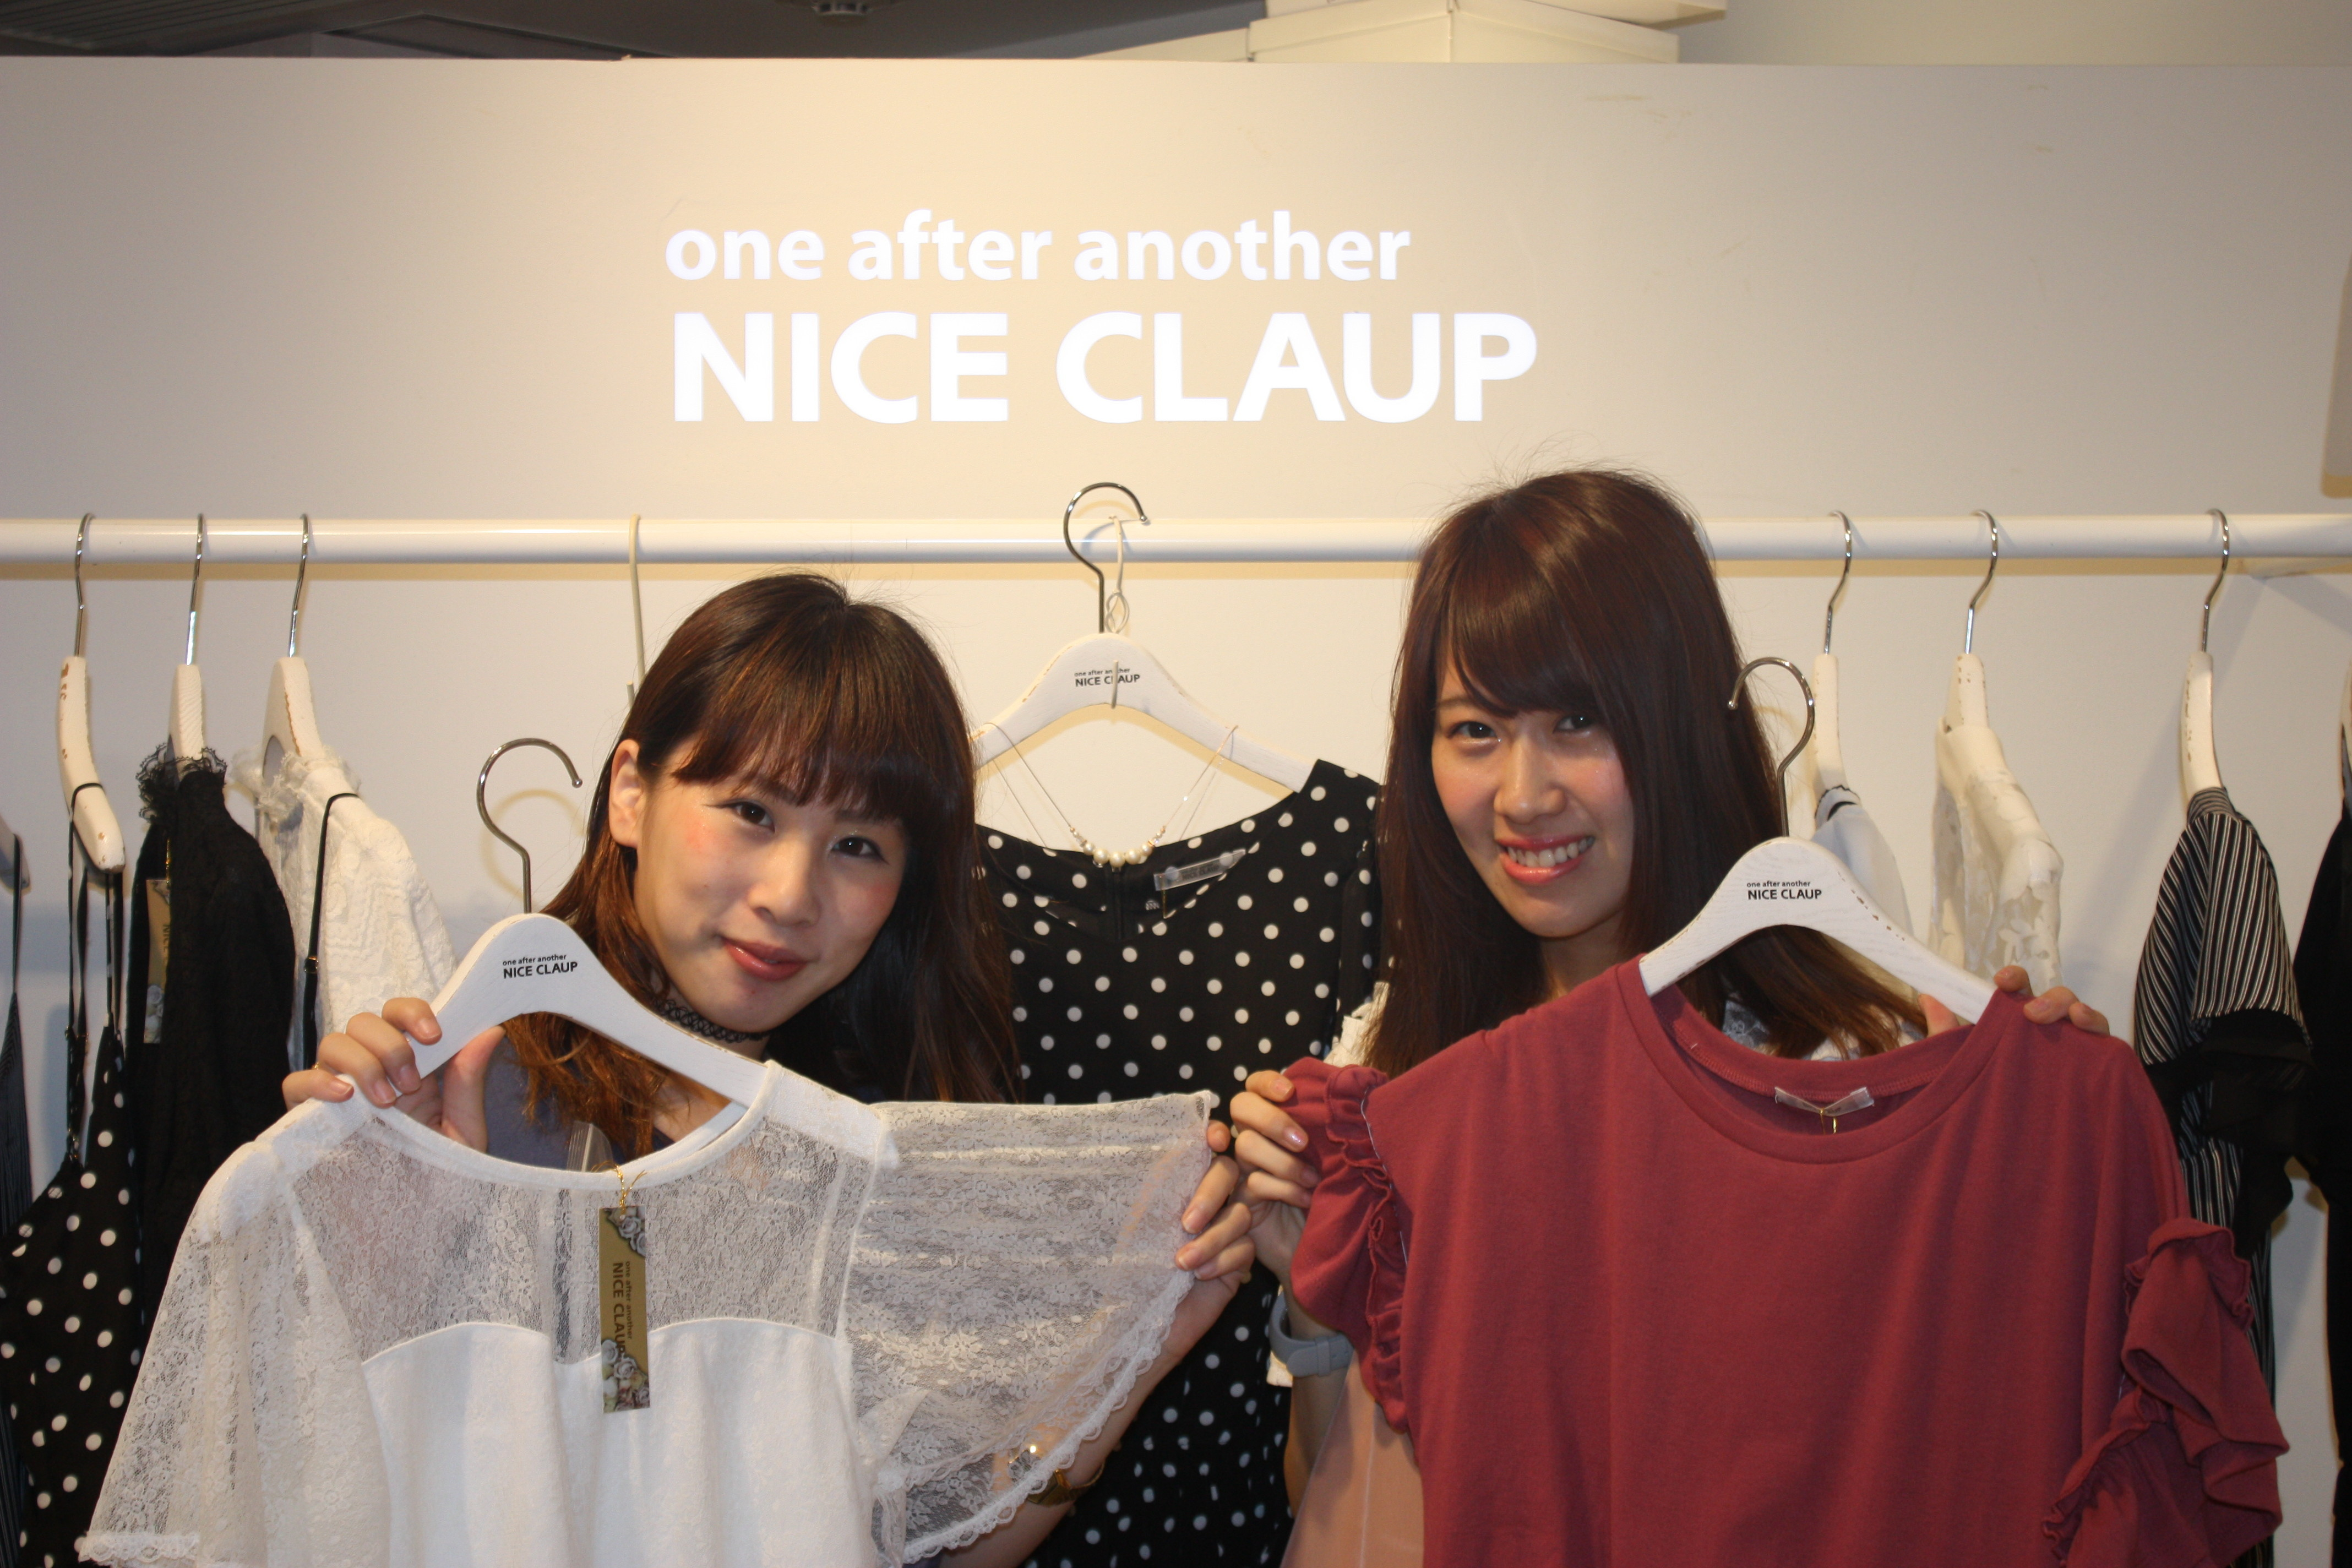 one after another NICE CLAUP(ワンアフターアナザーナイスクラップ) シャポー船橋店 のアルバイト情報